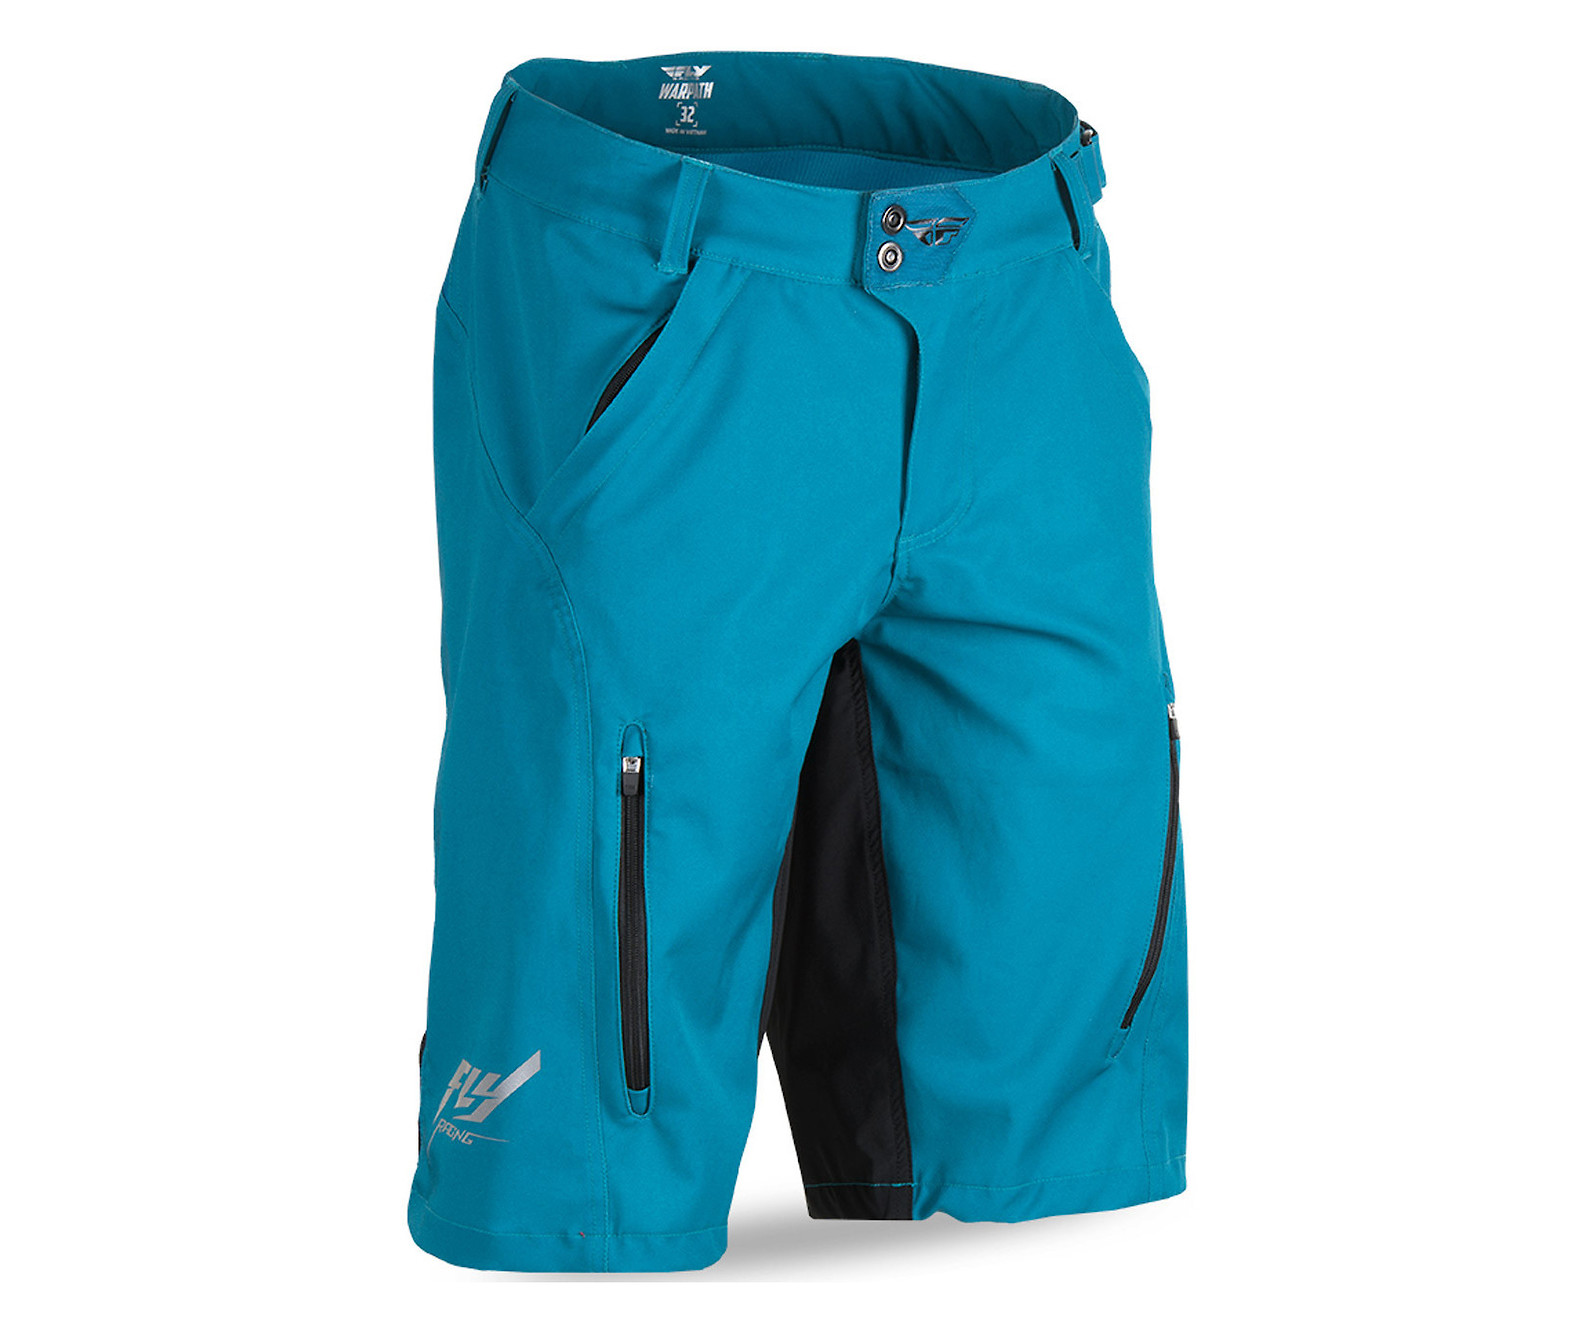 Fly Racing Warpath Short (Dark Teal/Black)